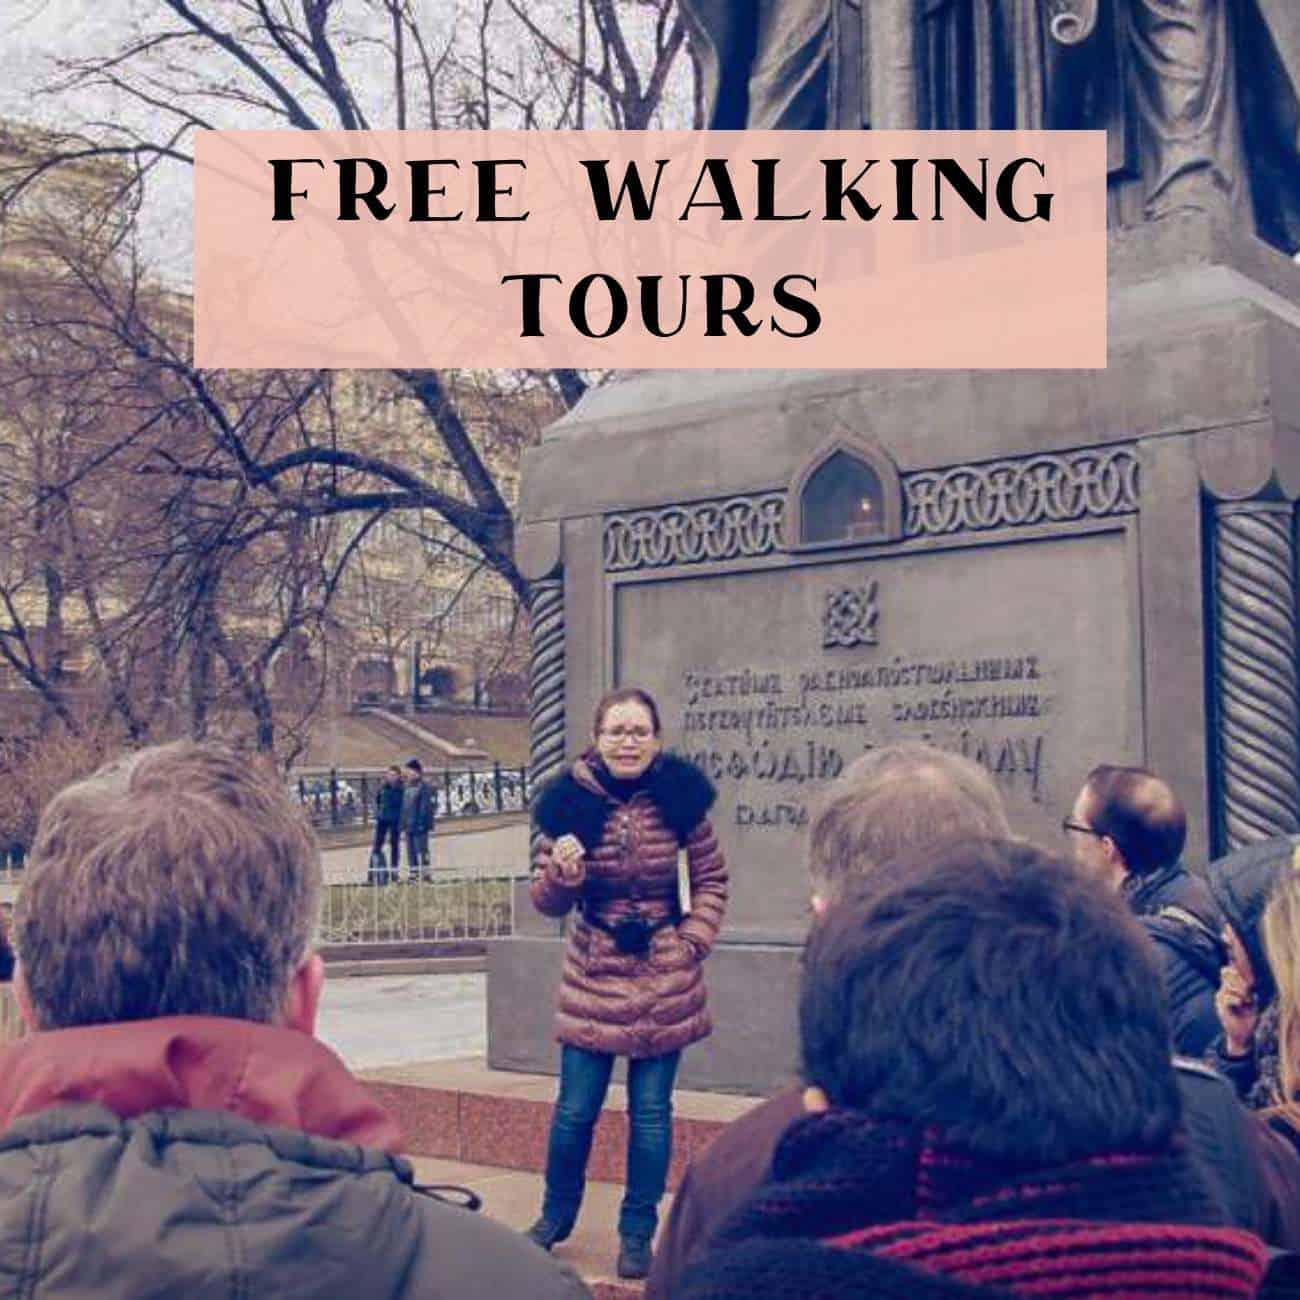 Best Free Walking Tours in Europe Reviewed